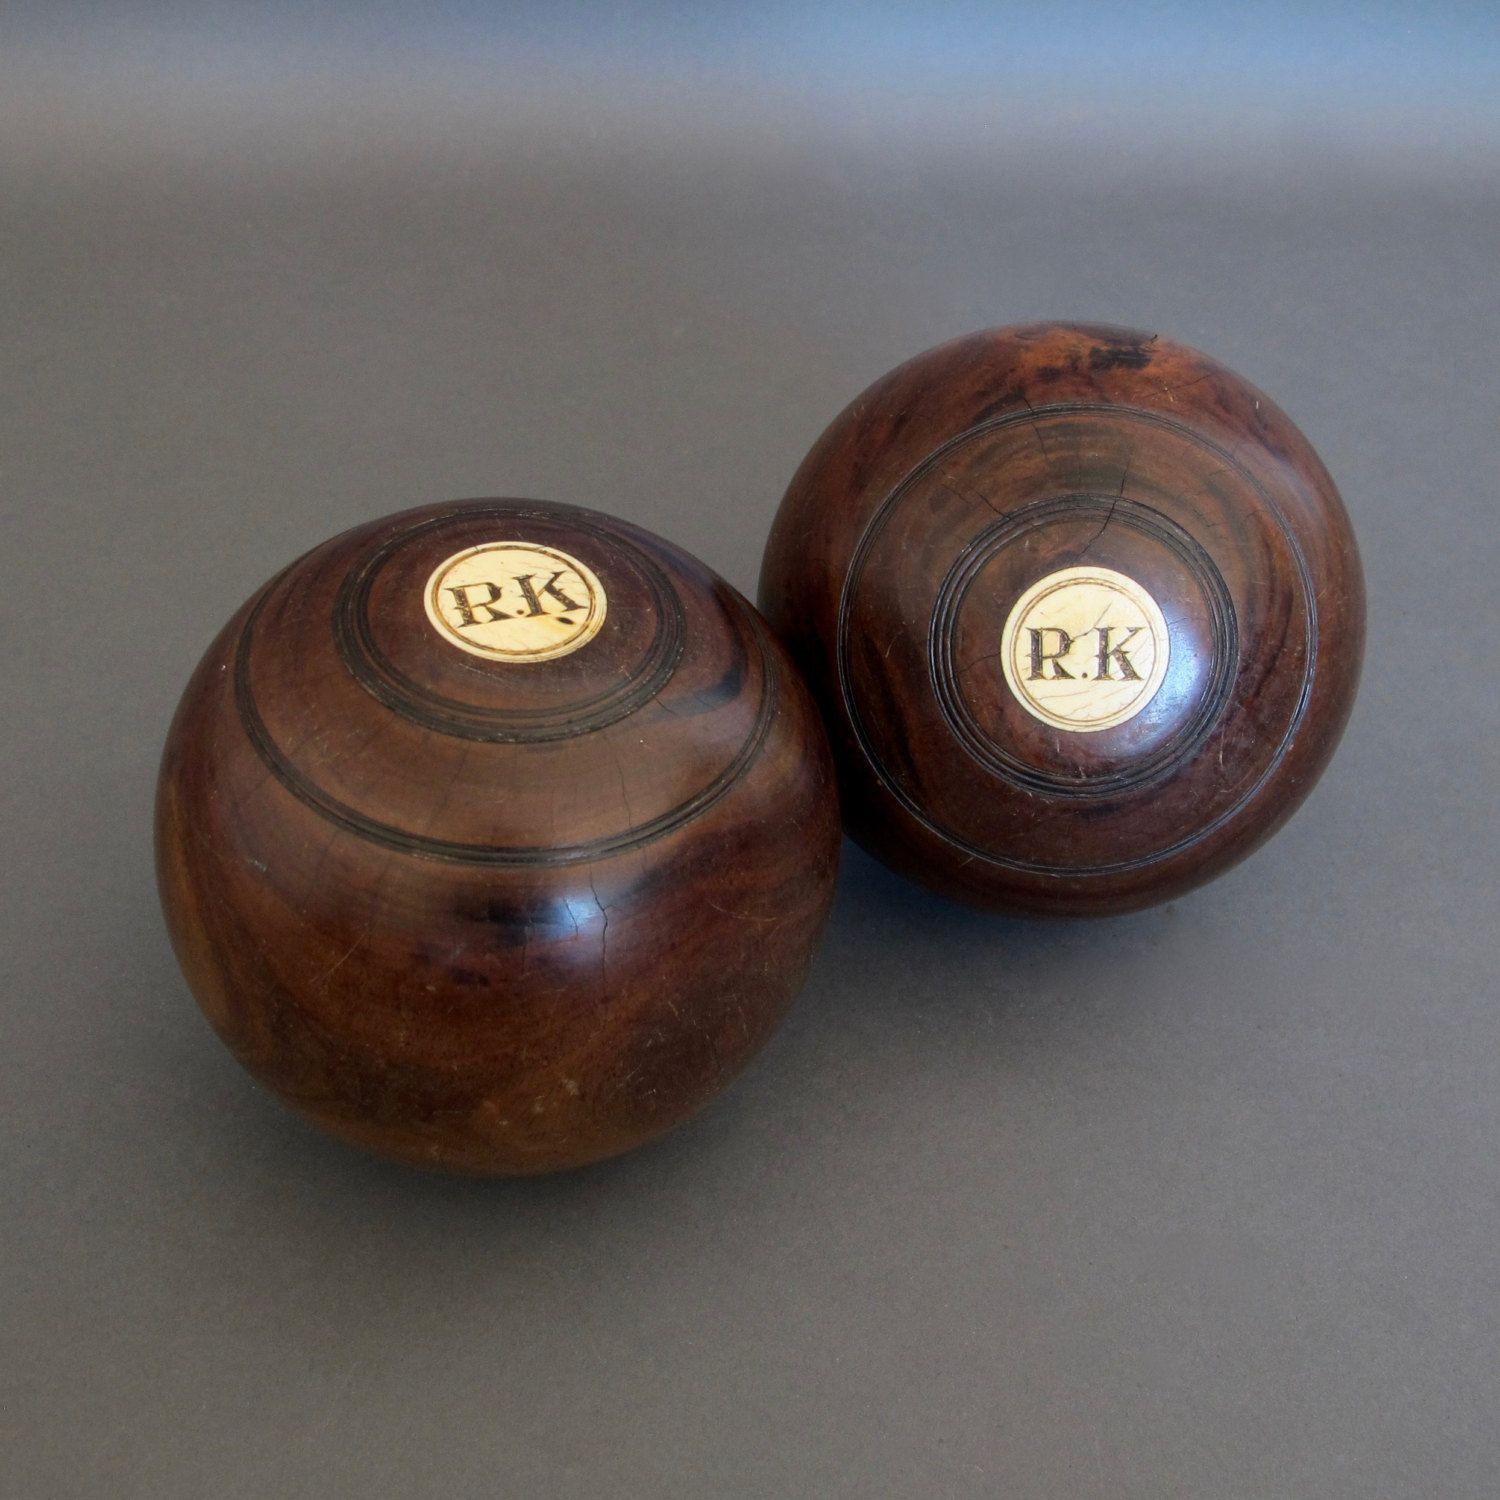 Pair of vintage lawn bowls from england lignum vitae lawn bowl pair of vintage lawn bowls from england lignum vitae lawn bowl vintage bowling ball by fanshaweblaine on etsy sporty vintage pinterest lawn geenschuldenfo Choice Image